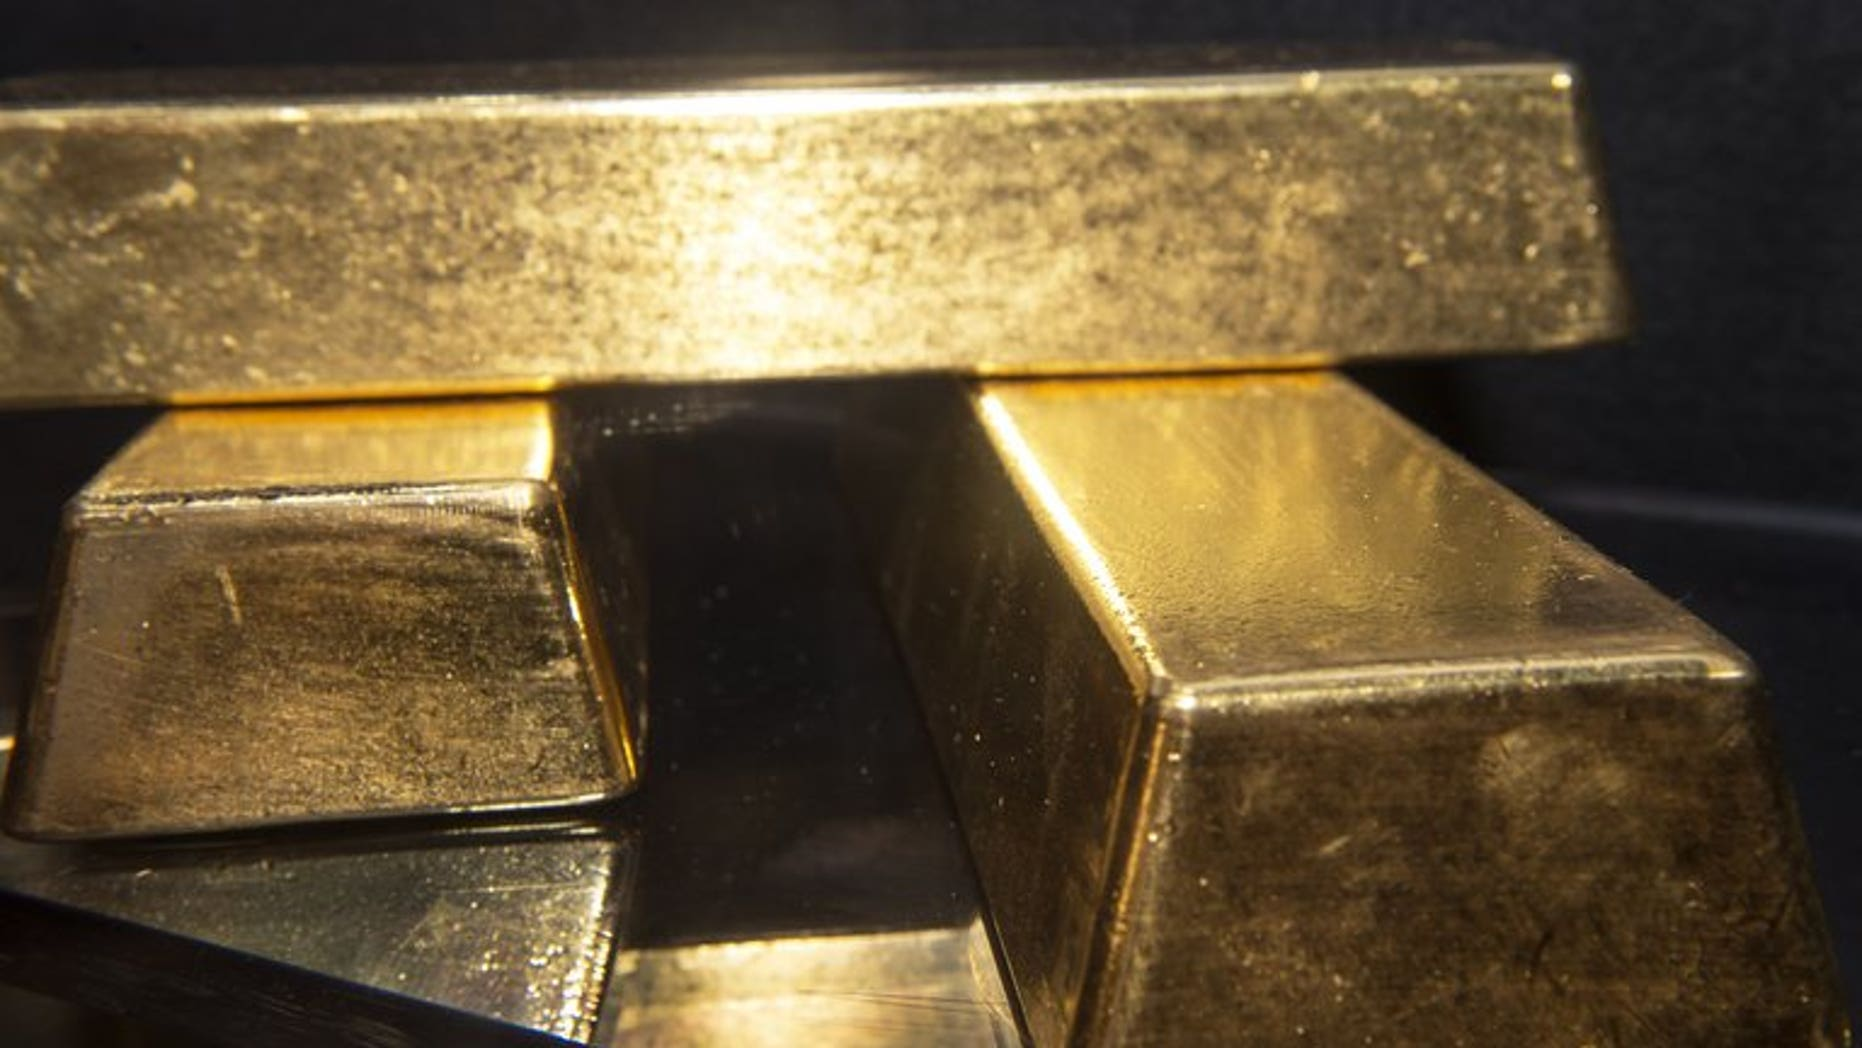 Three gold bullion bars with a combined value of more than $2 million on display at the Bureau of Engraving and Printing in Washington, on August 27, 2012